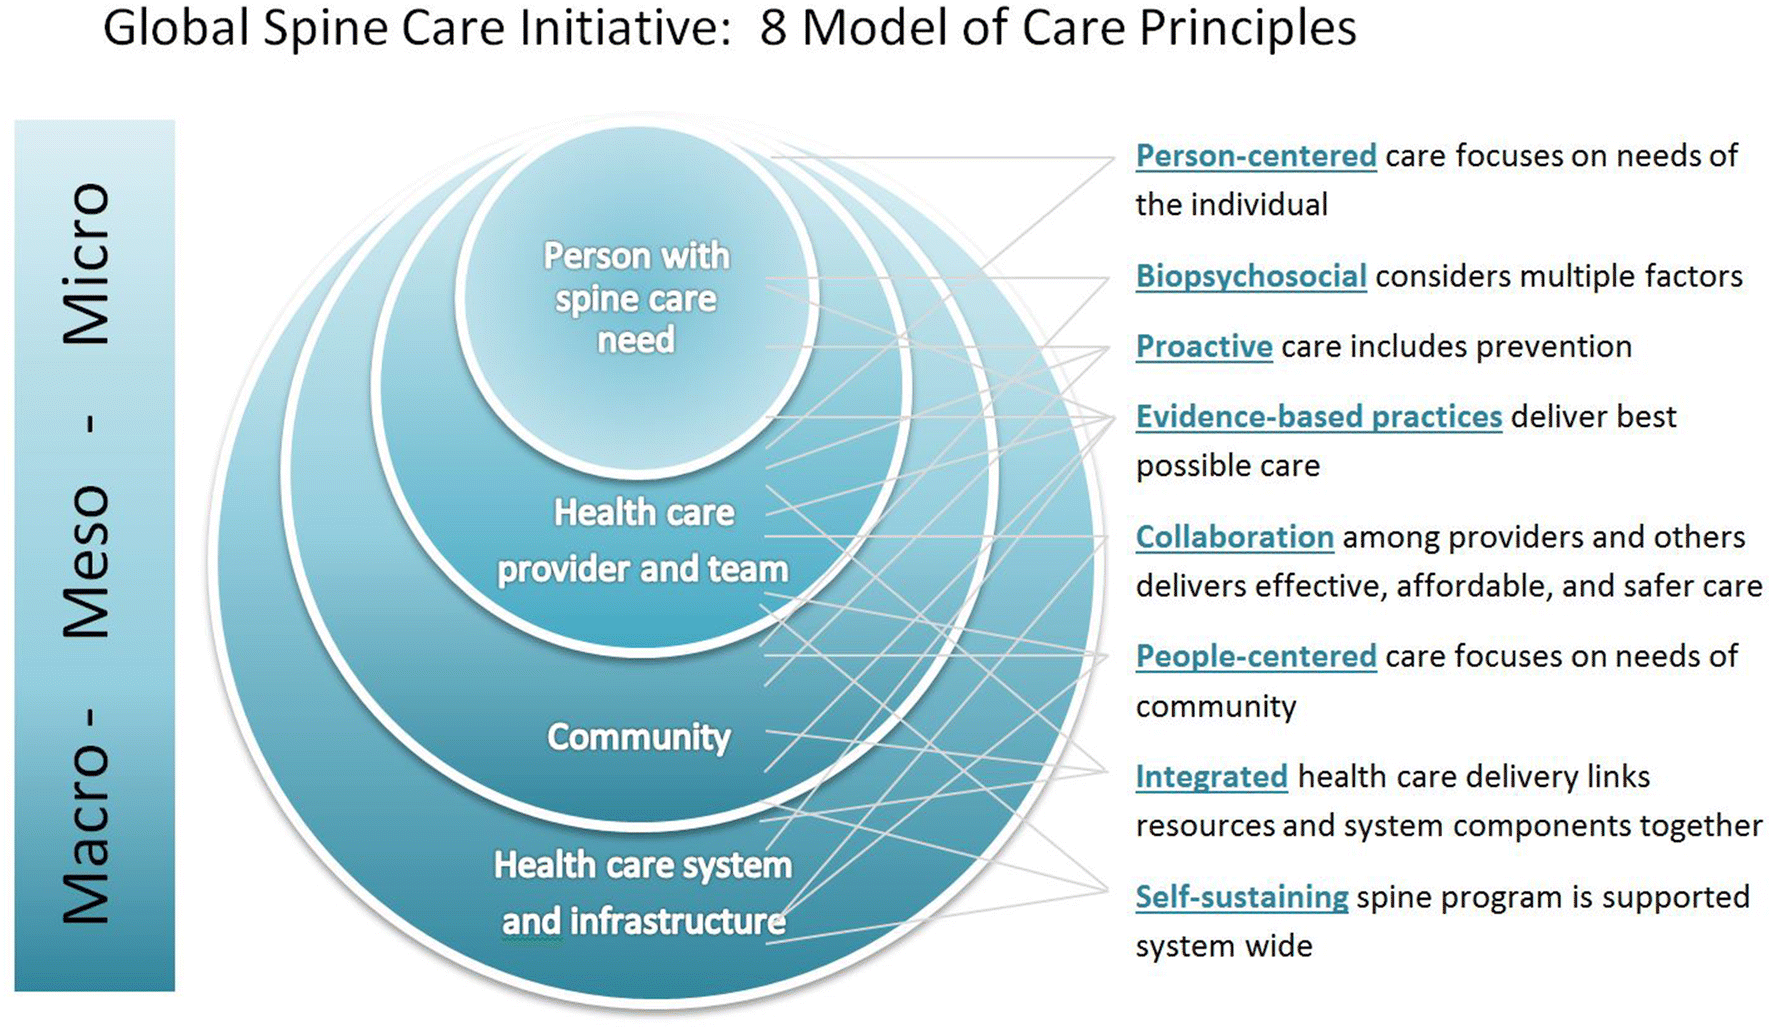 The Global Spine Care Initiative: model of care and